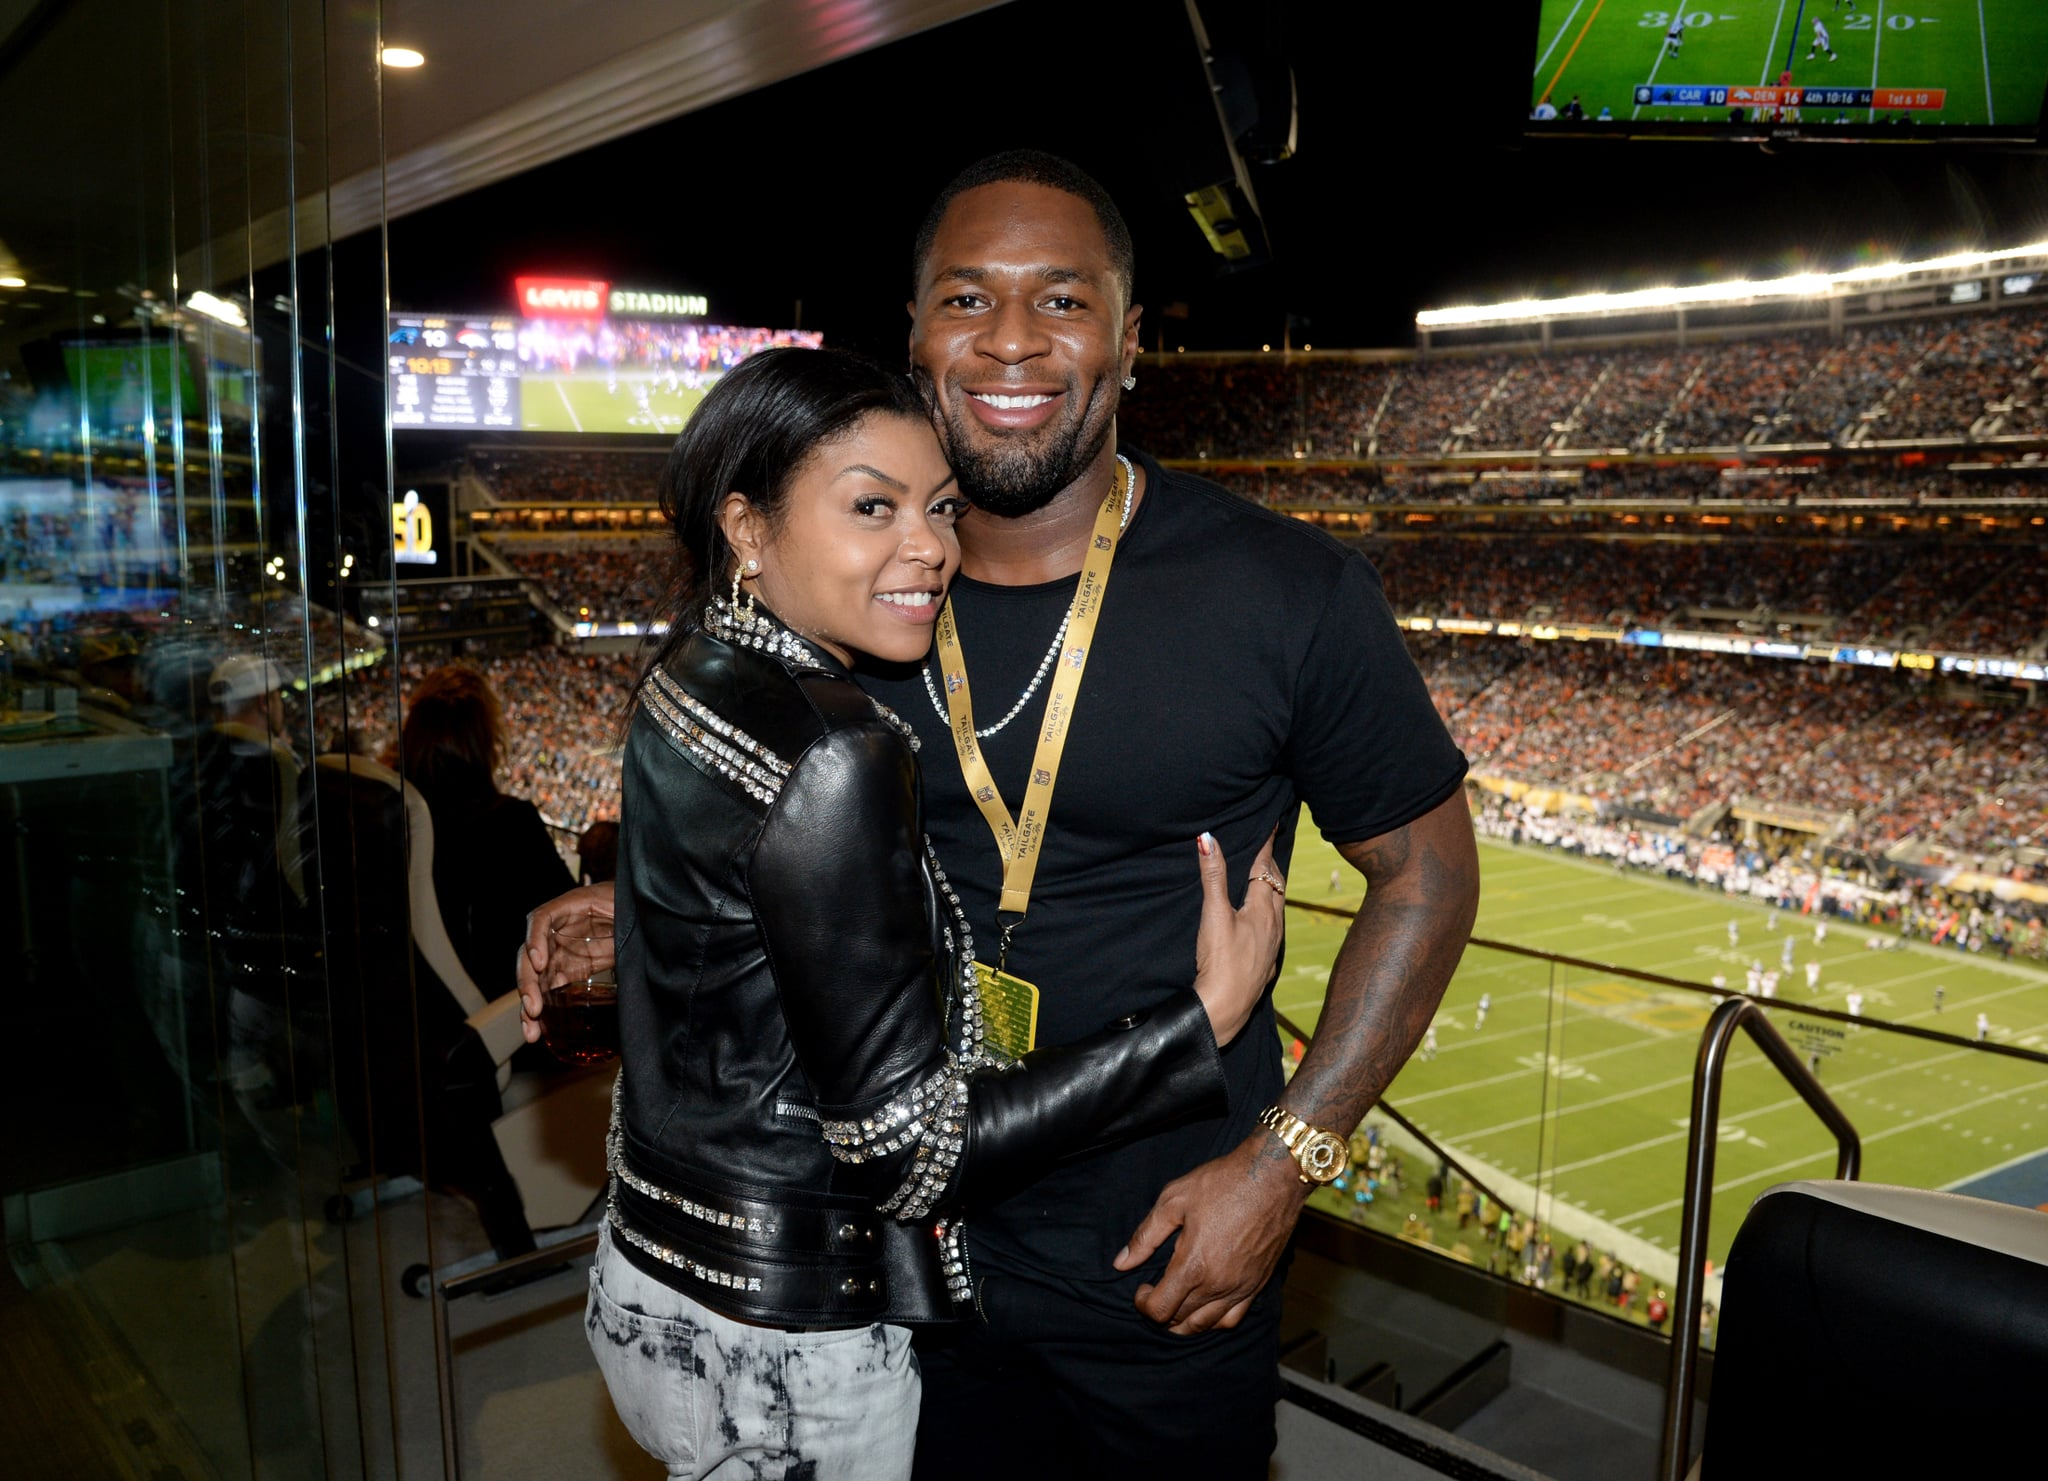 SANTA CLARA, CA - FEBRUARY 07:  Actress Taraji P. Henson (L) and NFL player Kelvin Hayden attend Super Bowl 50 at Levi's Stadium on February 7, 2016 in Santa Clara, California.  (Photo by Kevin Mazur/WireImage)